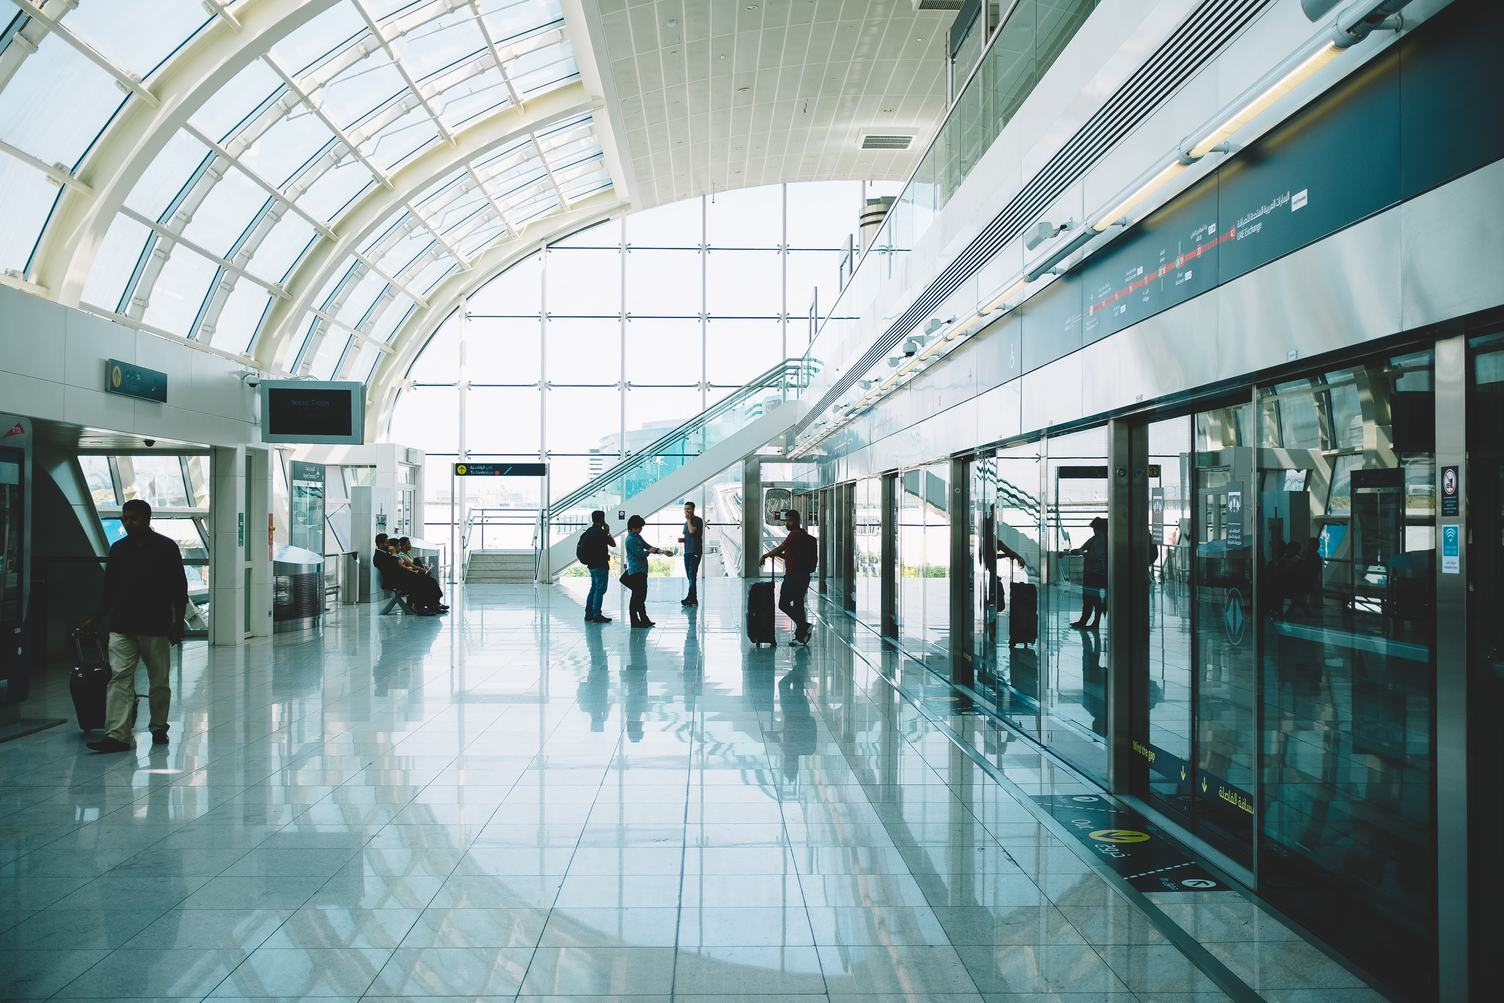 Airport Arrival Hall Interior